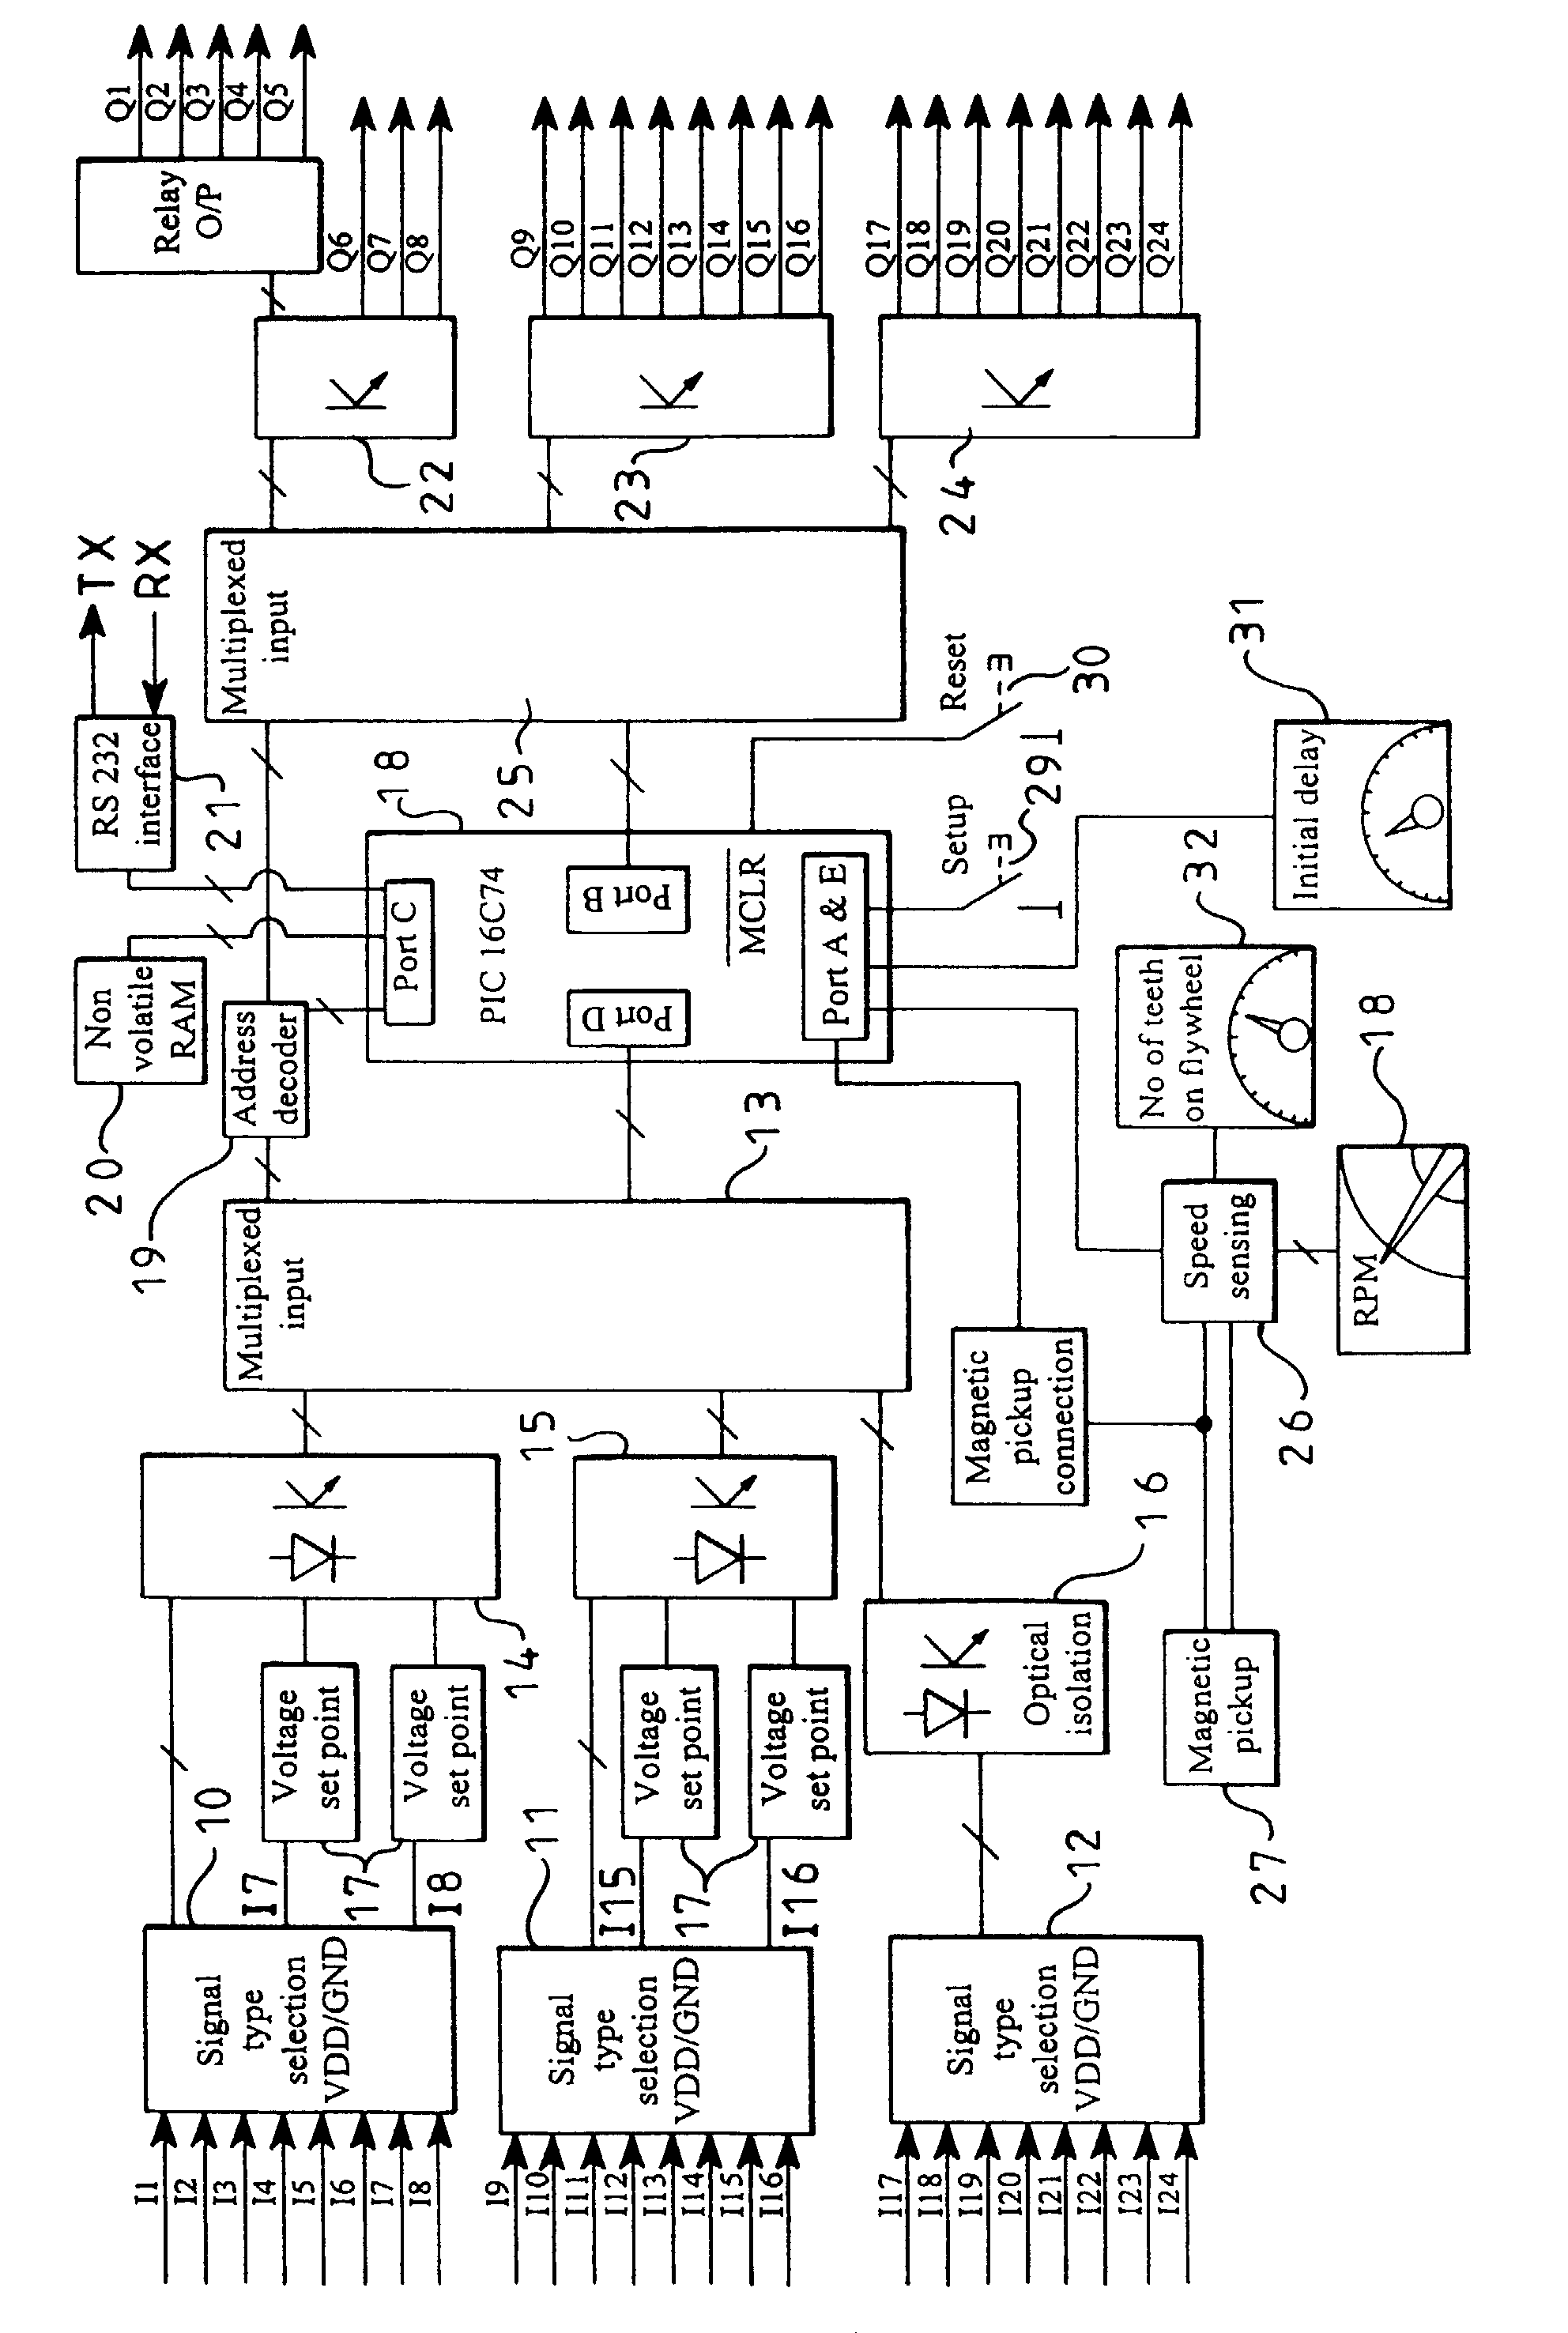 00090001 patent ep0868929a1 fire pump control system and method of fire pump controller wiring diagram at gsmx.co